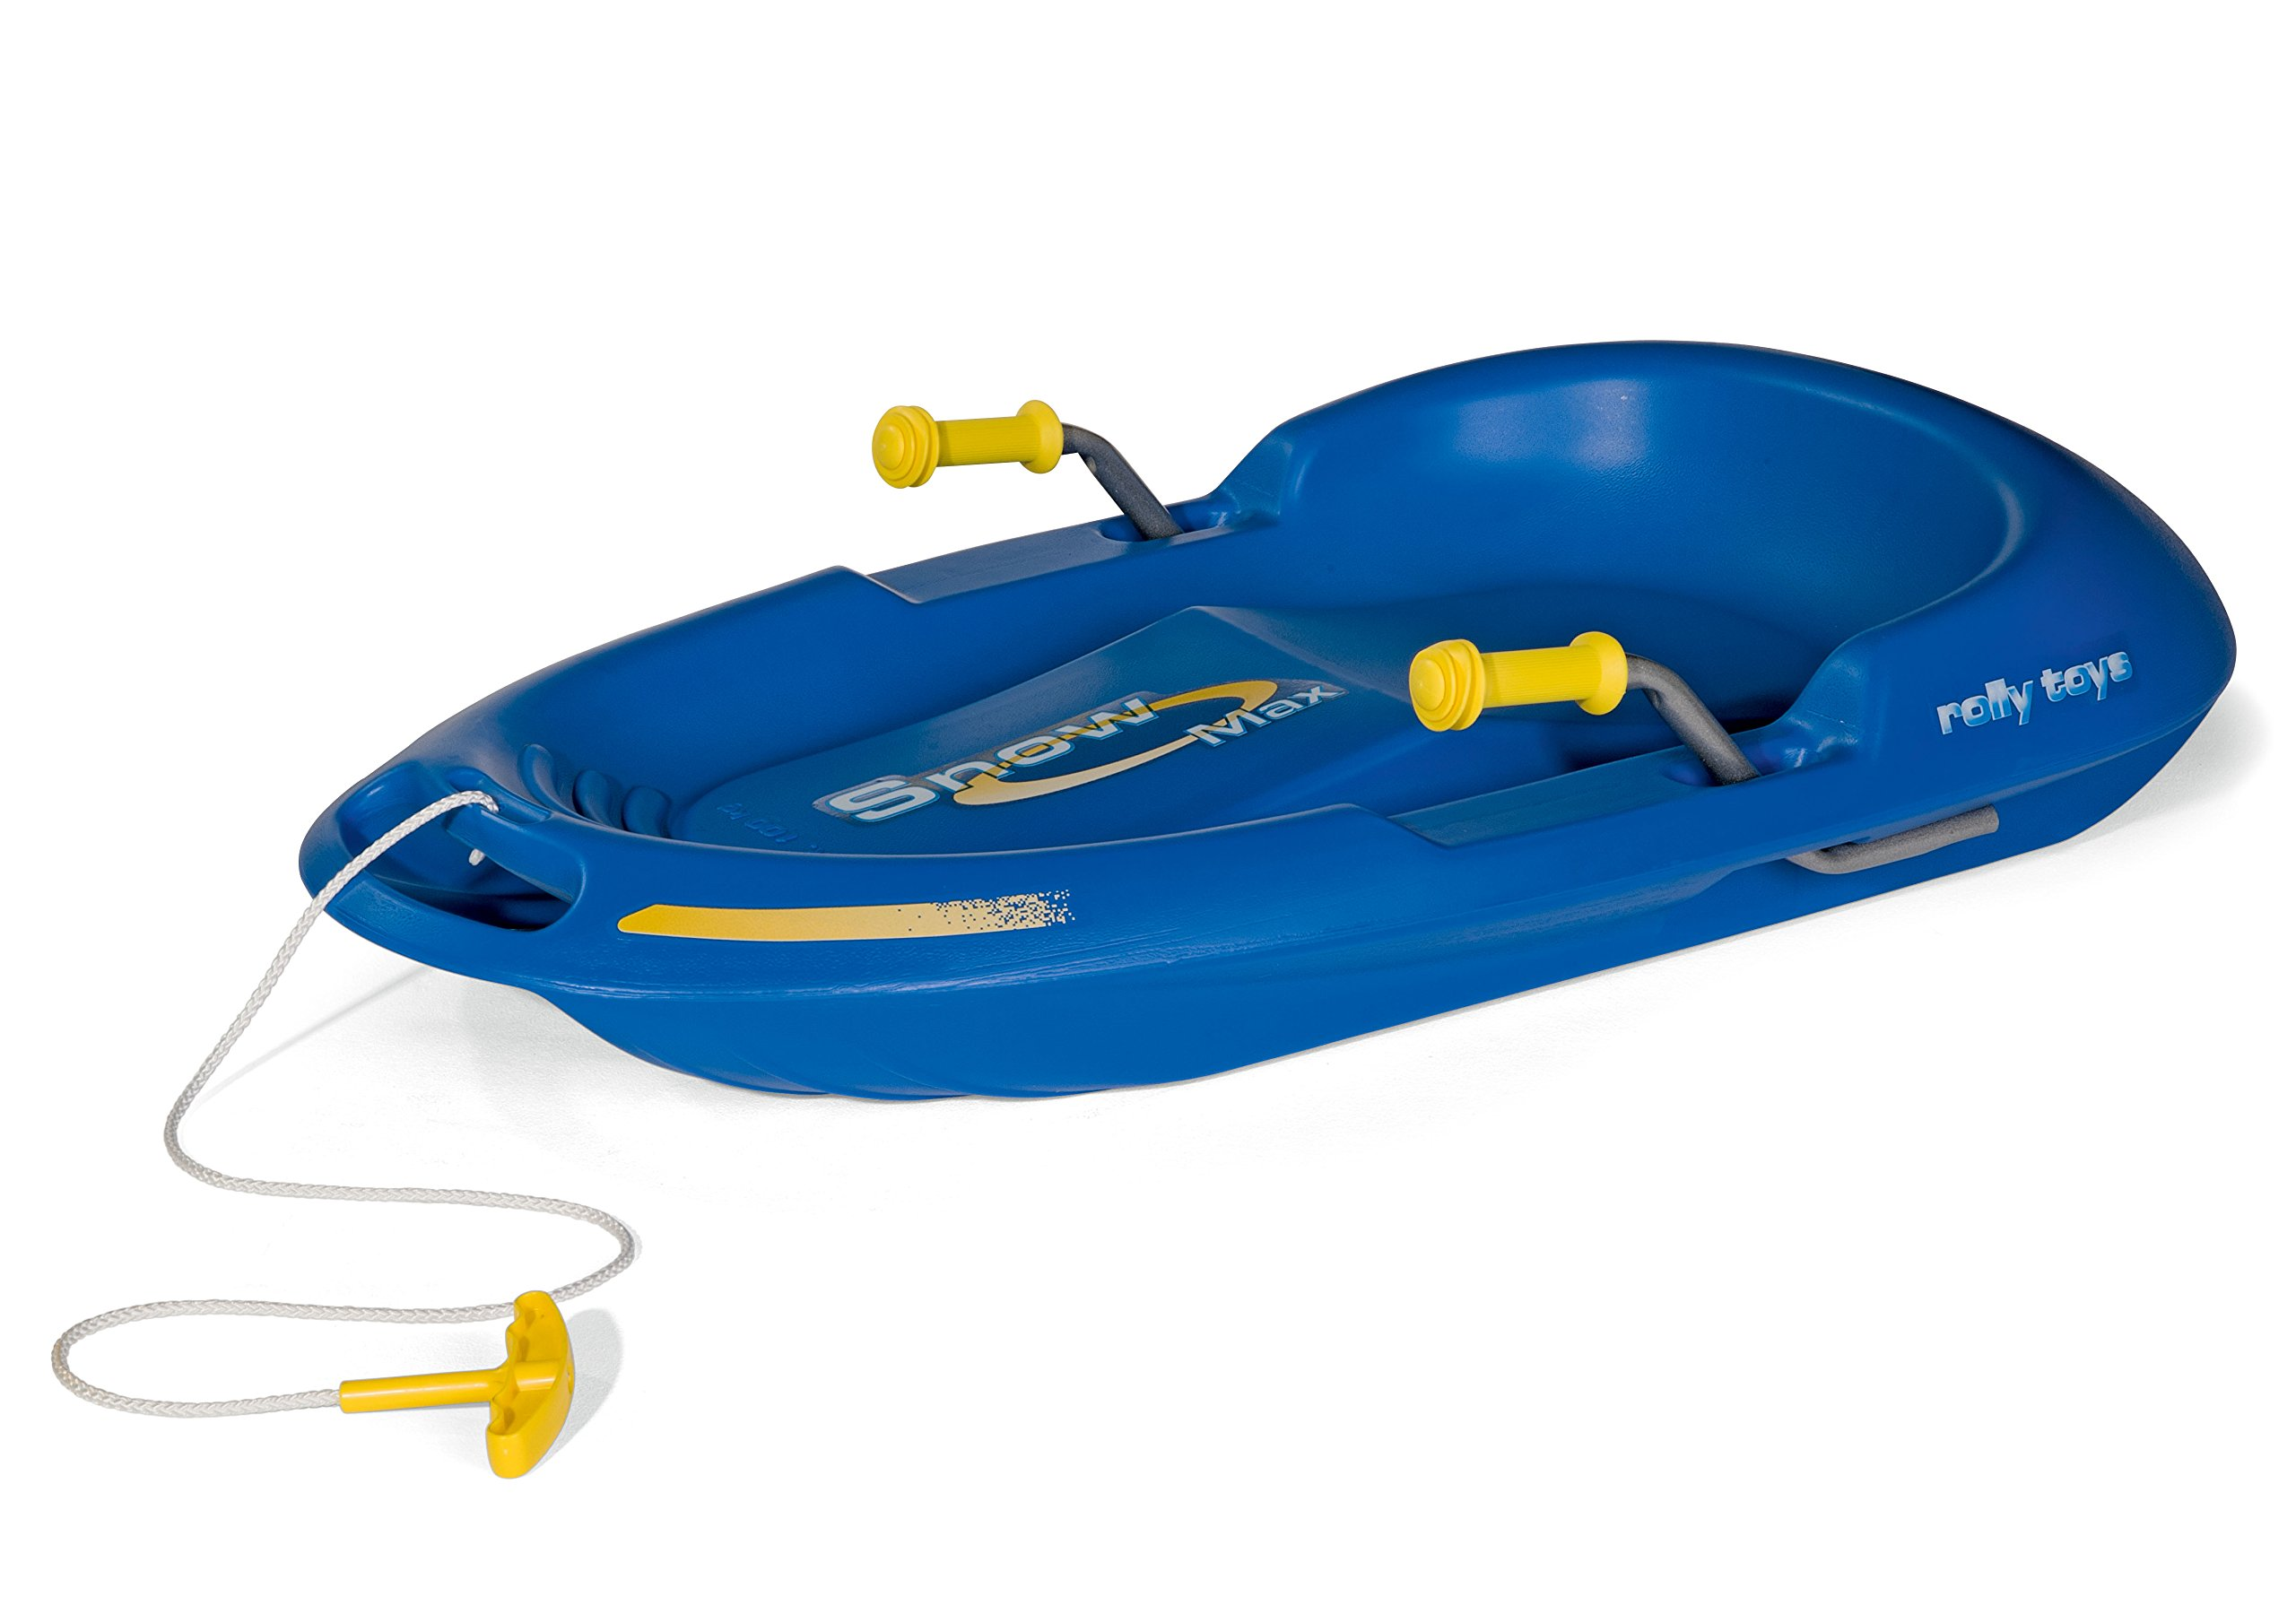 Rolly Toys Snow Max Sled, Blue by rolly toys